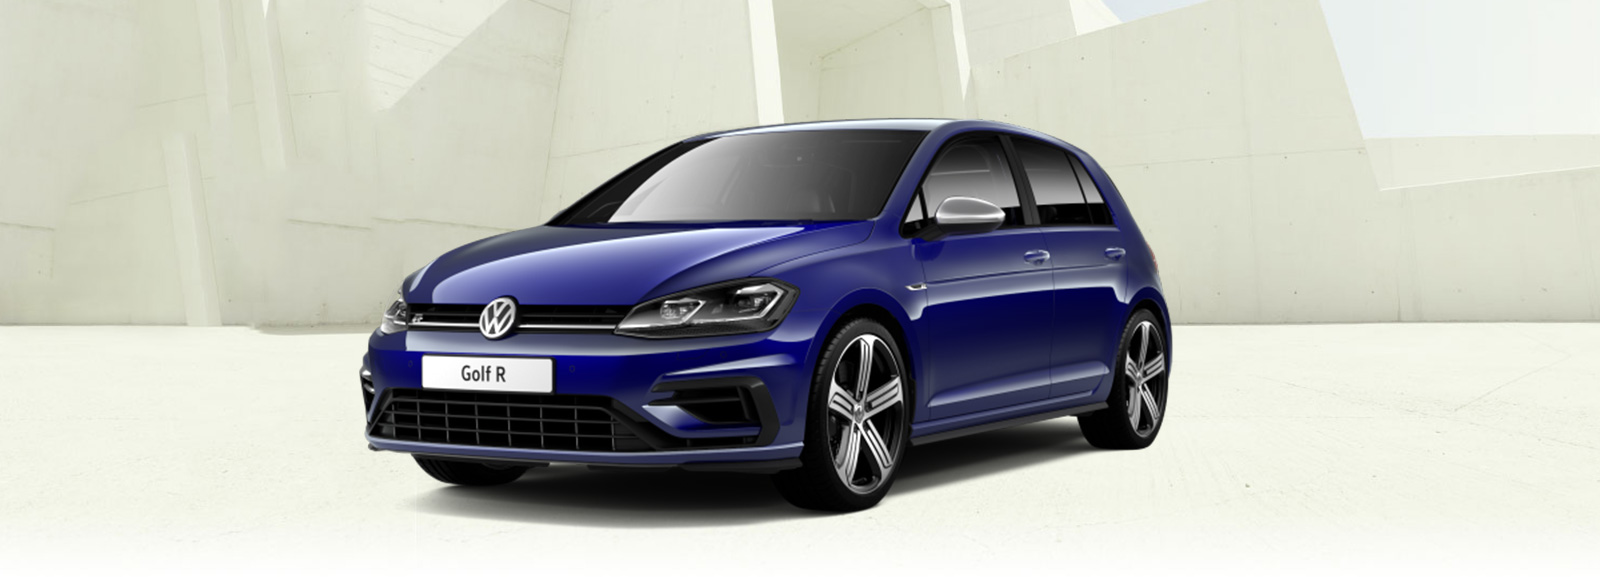 2018 Golf R, Golf GTI and Golf GTD Colour Guide & Prices